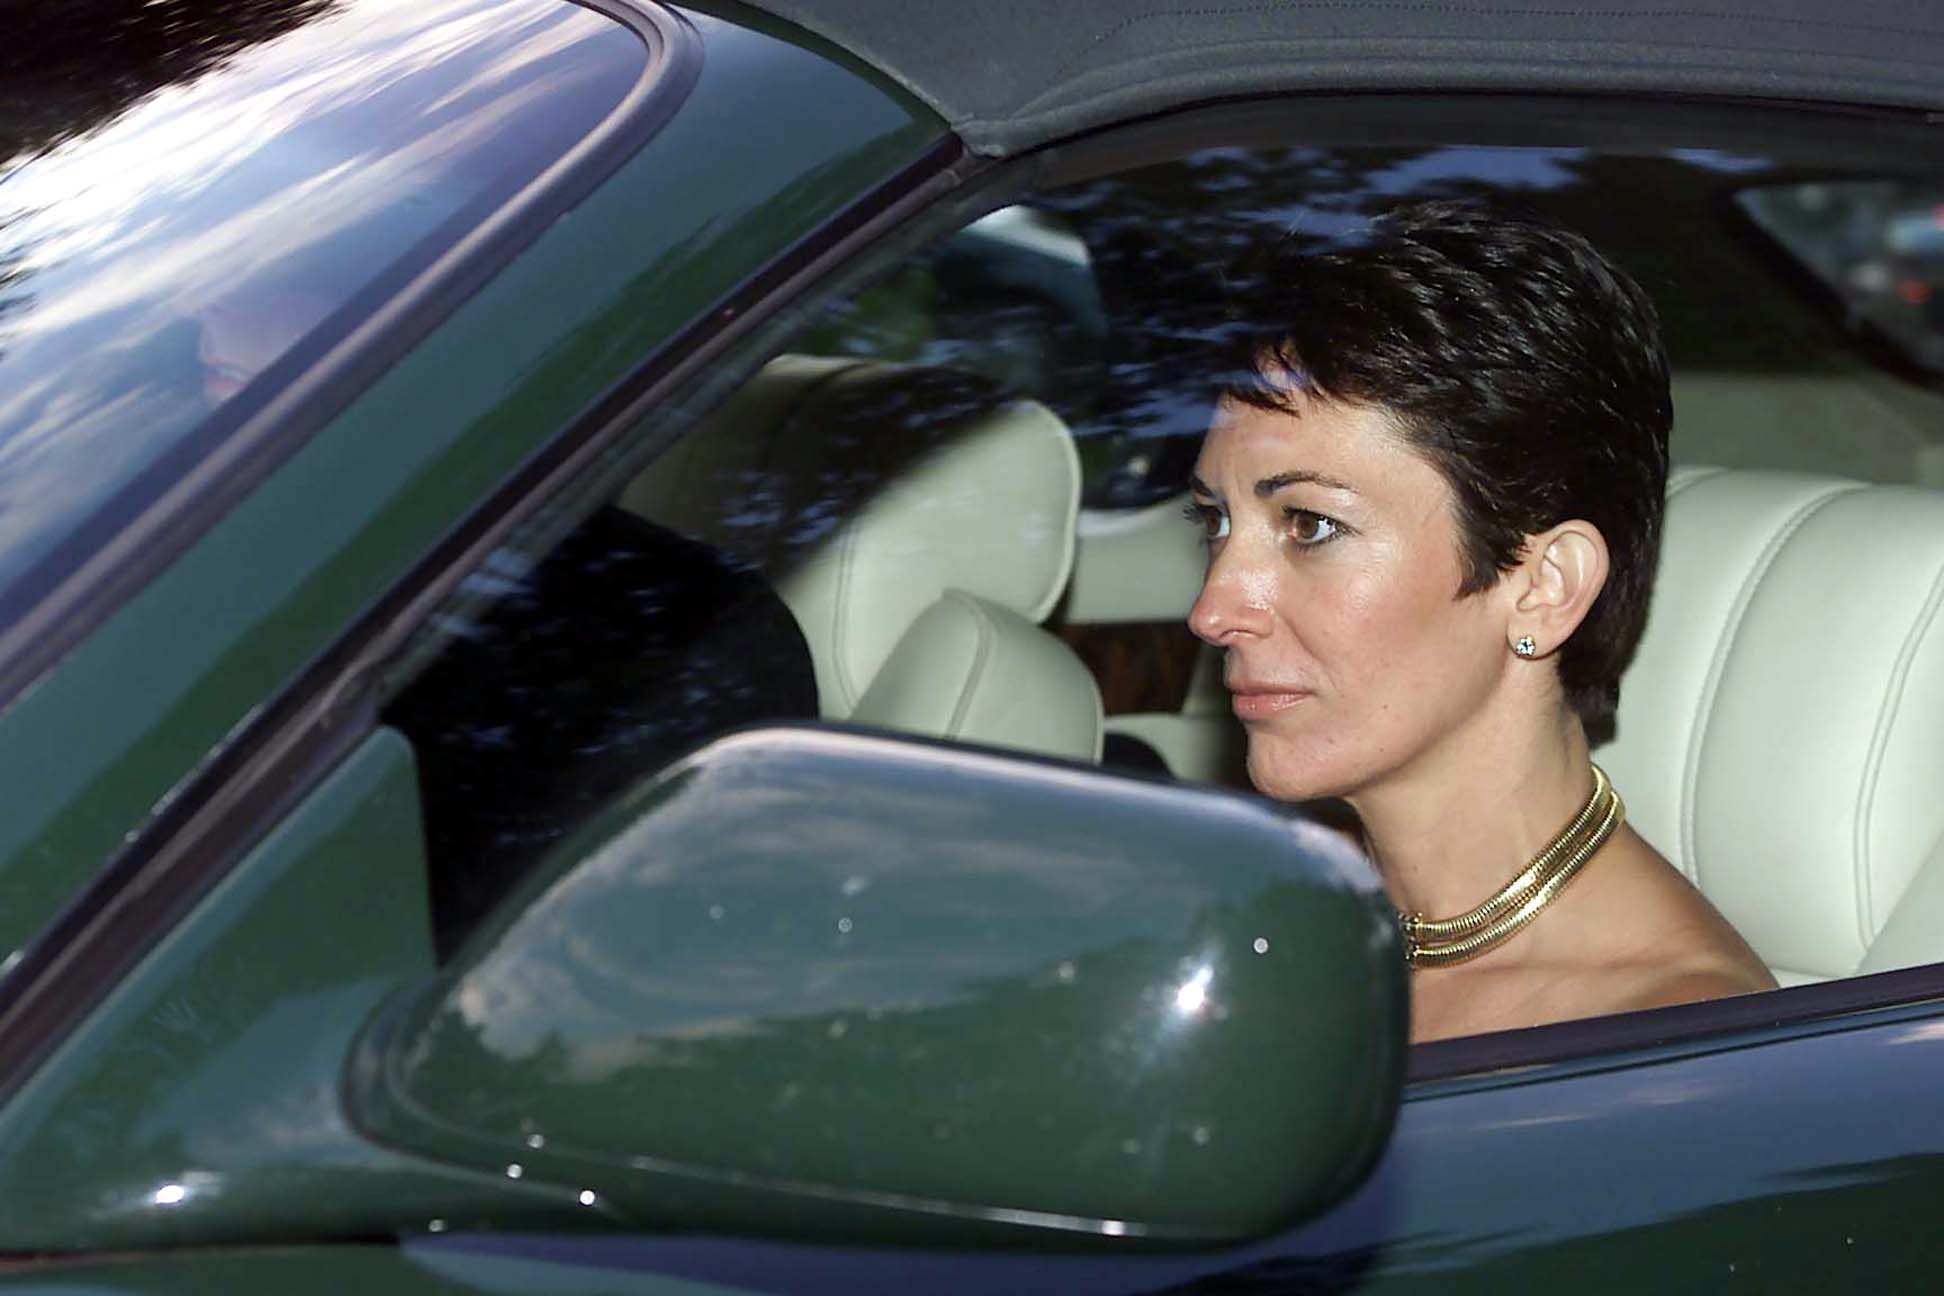 Ghislaine Maxwell pours scorn on claims by Andrew's accuser